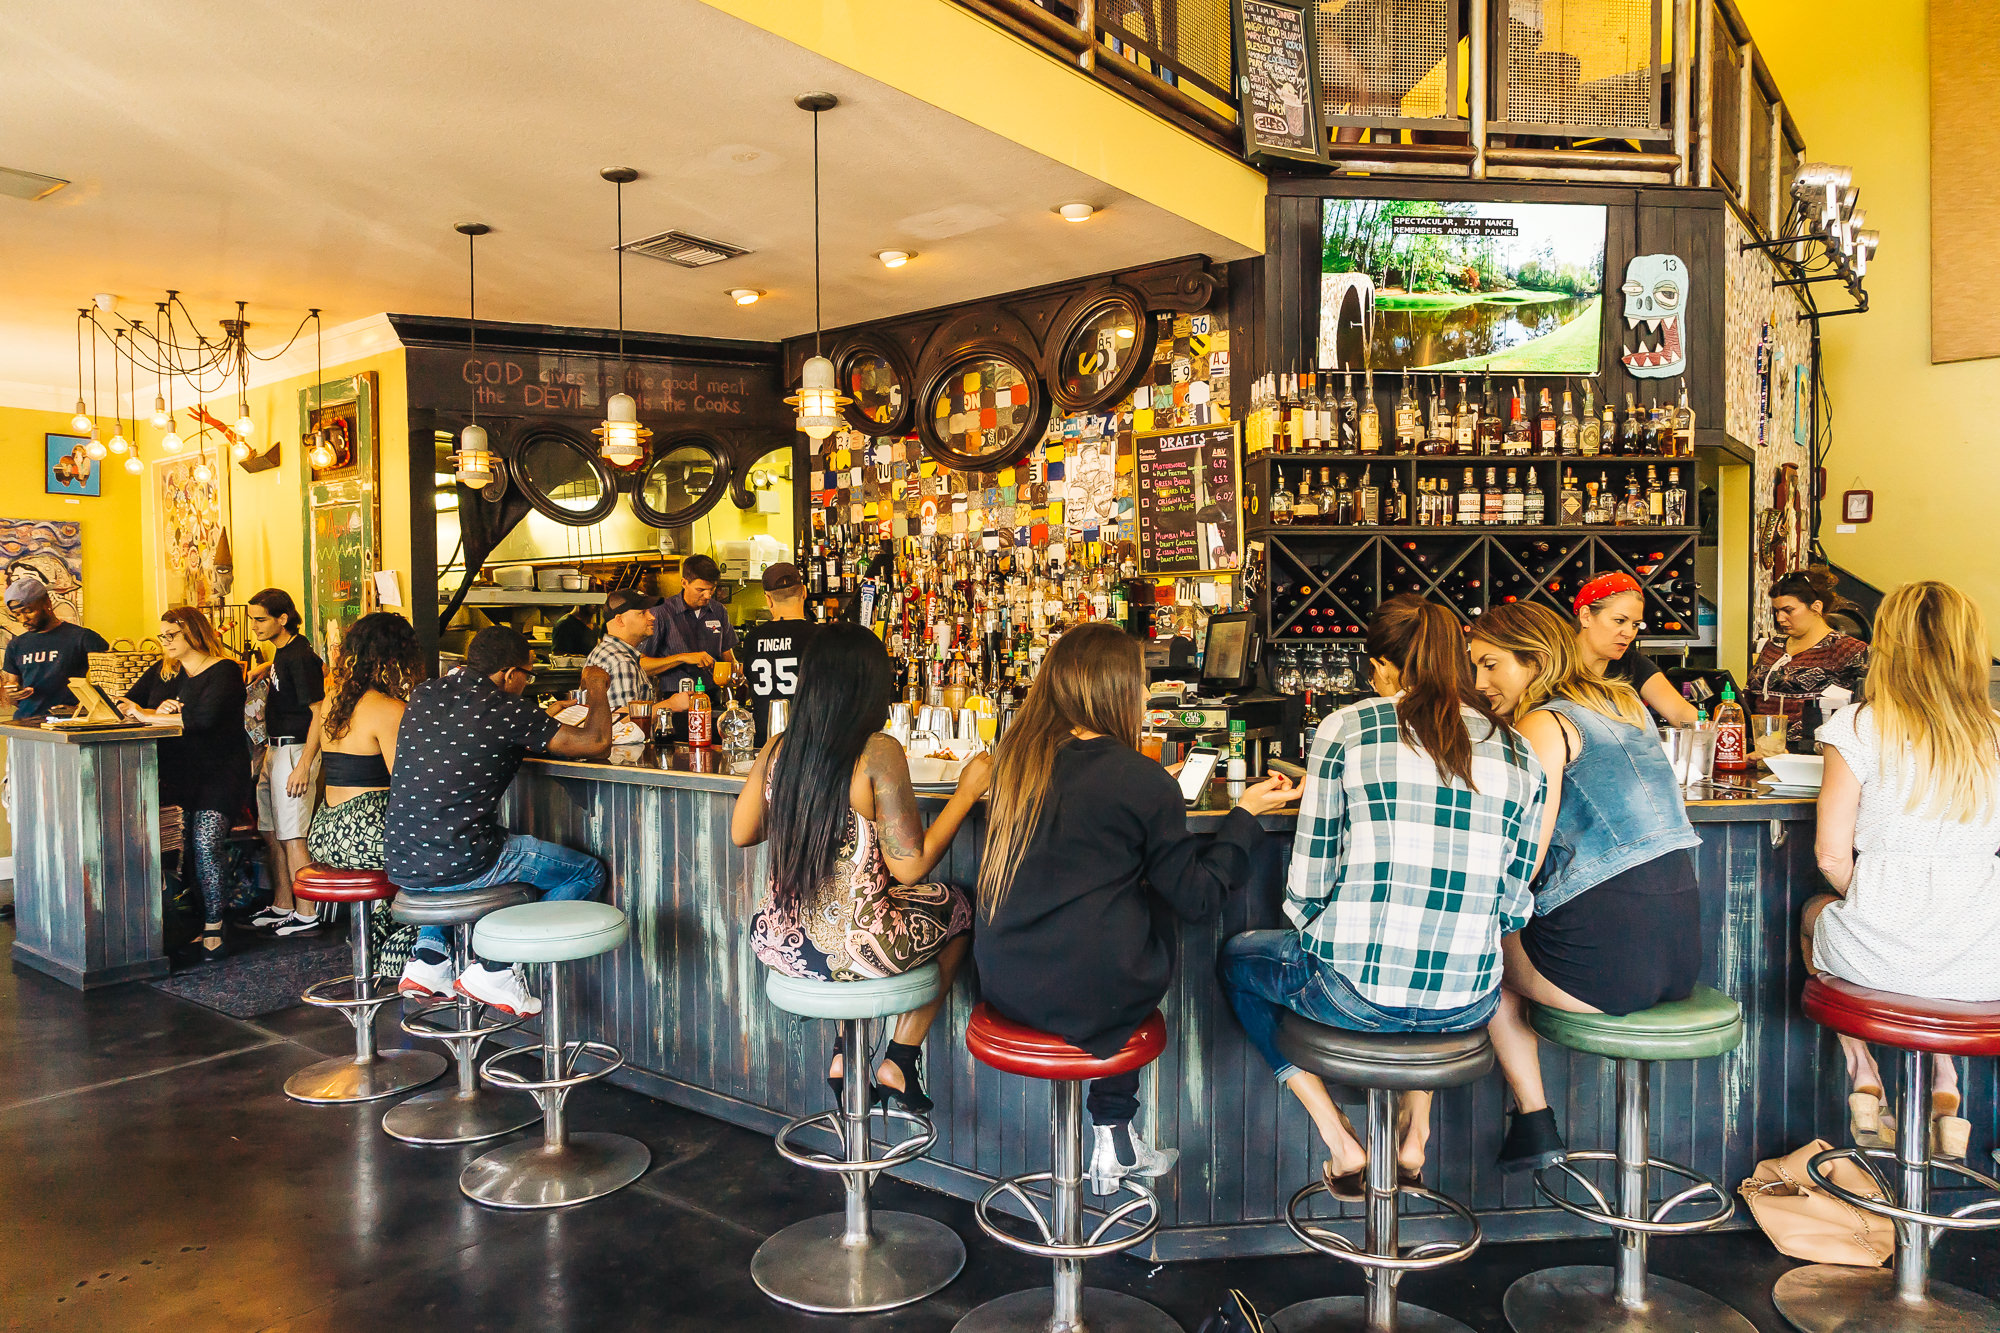 The colorful bar indoors